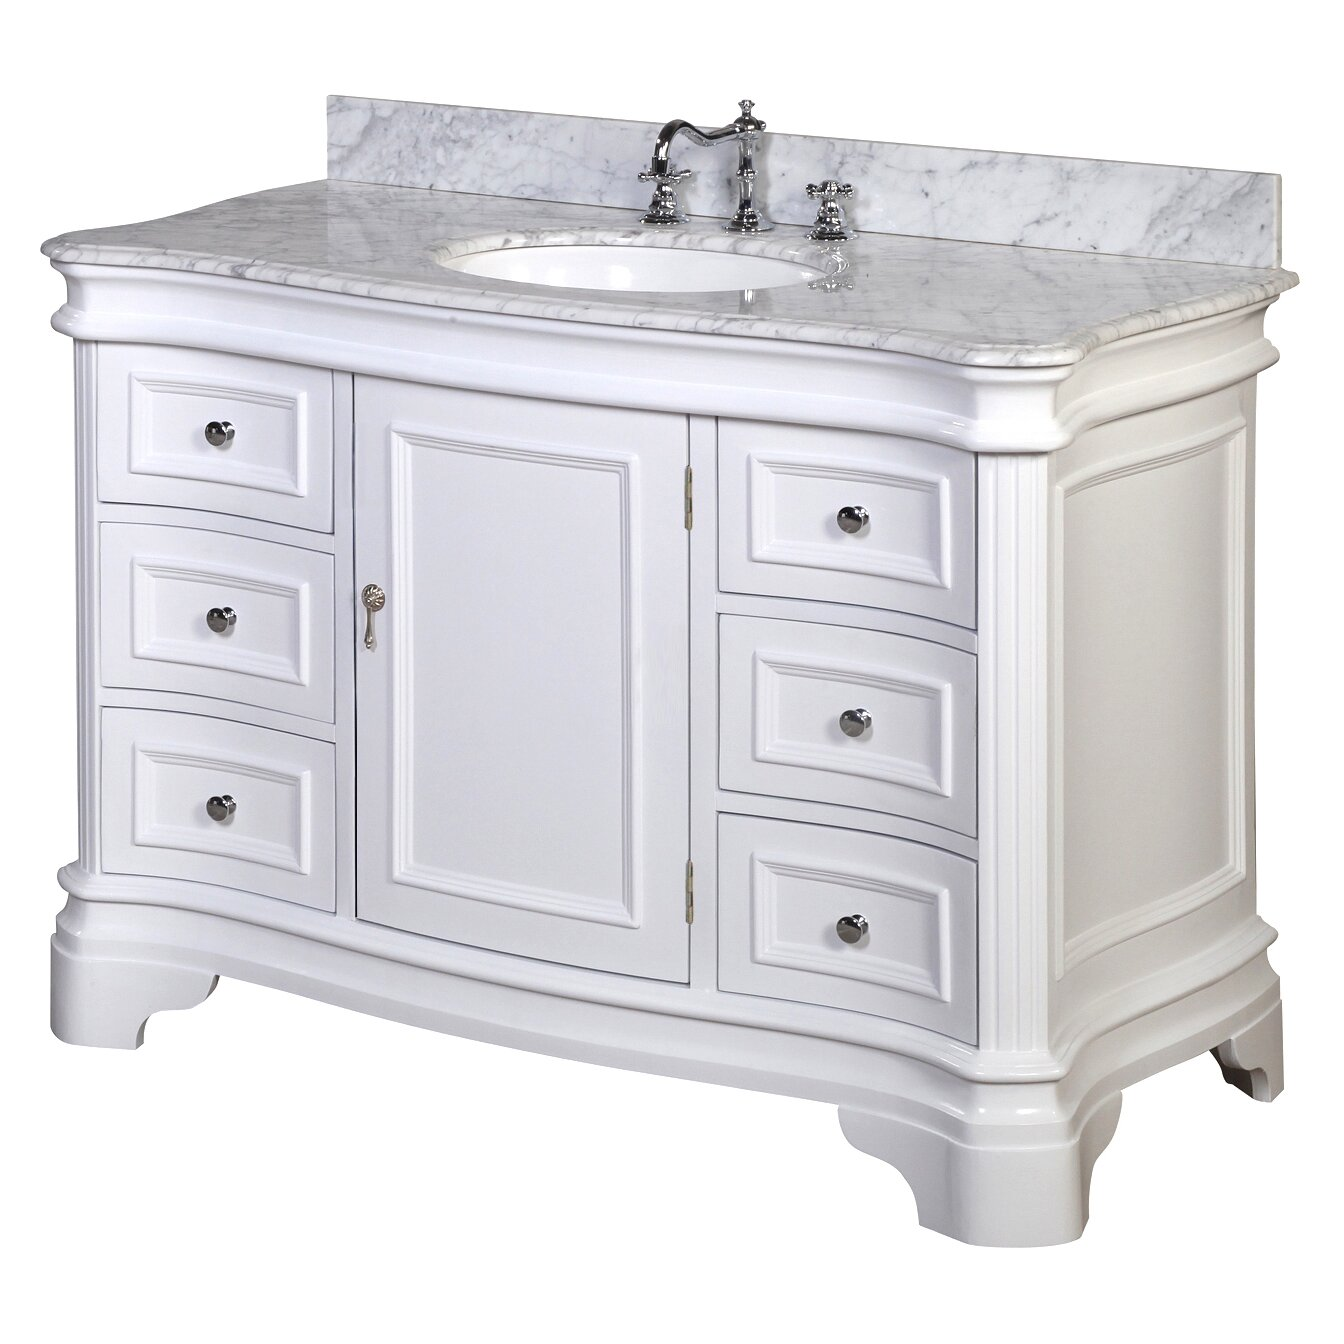 Kbc katherine 48 single bathroom vanity set reviews for Single bathroom vanity